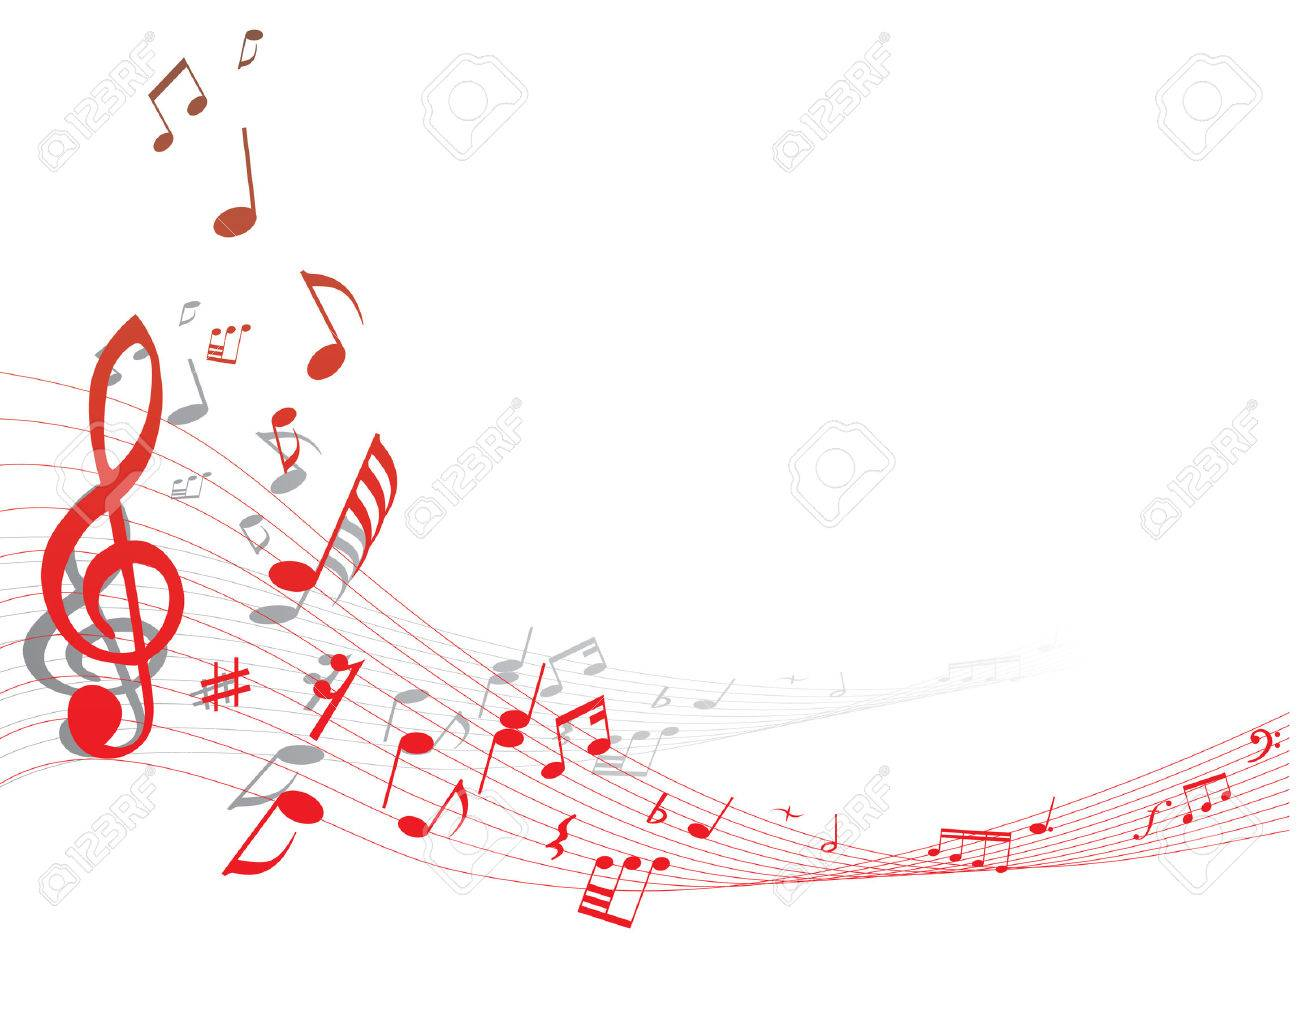 Musical notes staff background on white vector by tassel78 image - Quaver Notes Musical Note Staff On The Red Background Illustration